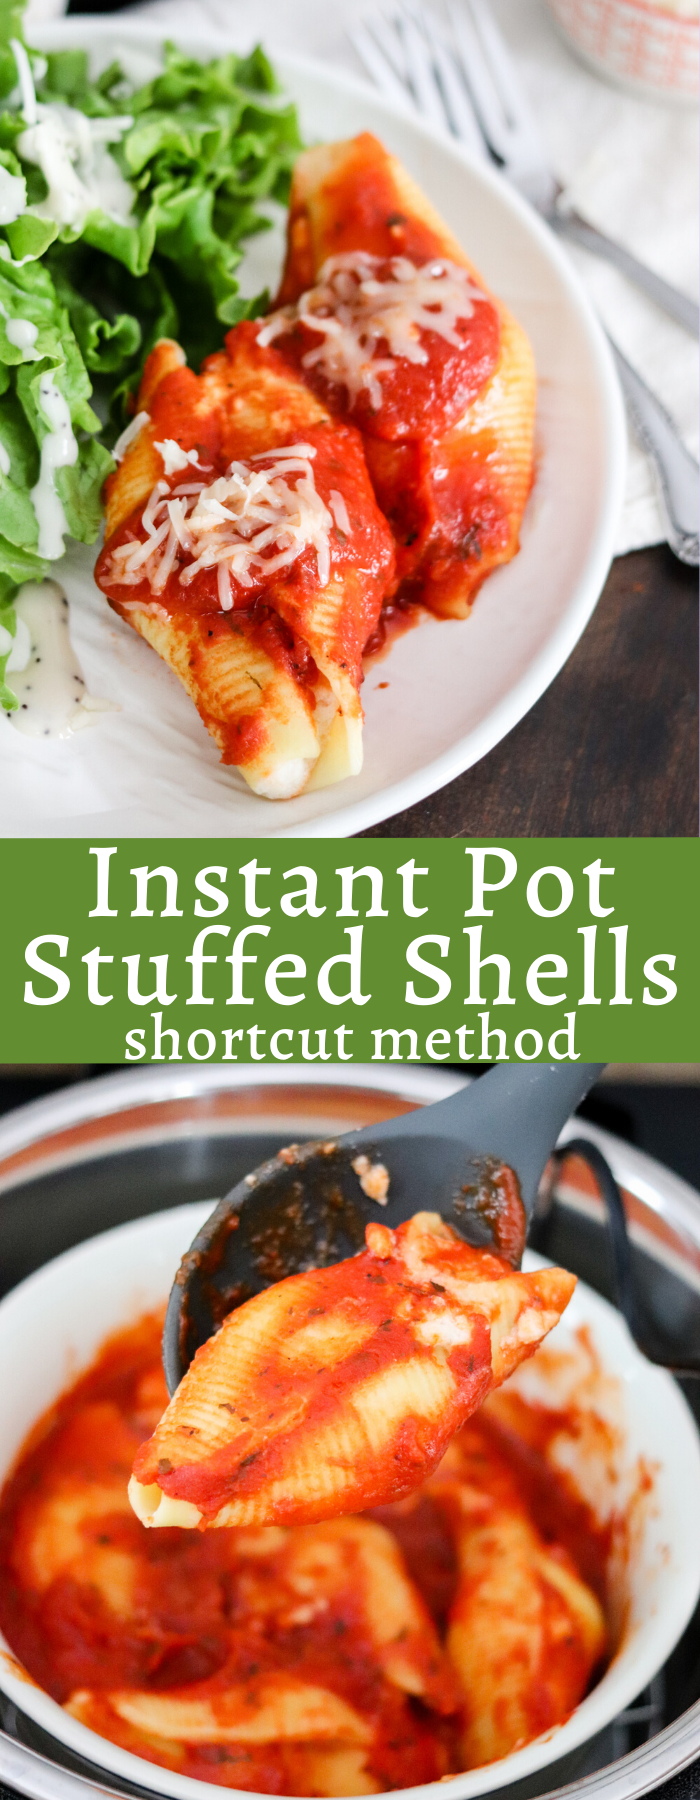 Instant Pot Stuffed Shells is a shortcut recipe using frozen stuffed shells that takes barely any time! This will become a busy weeknight staple in your weekly meal plan!